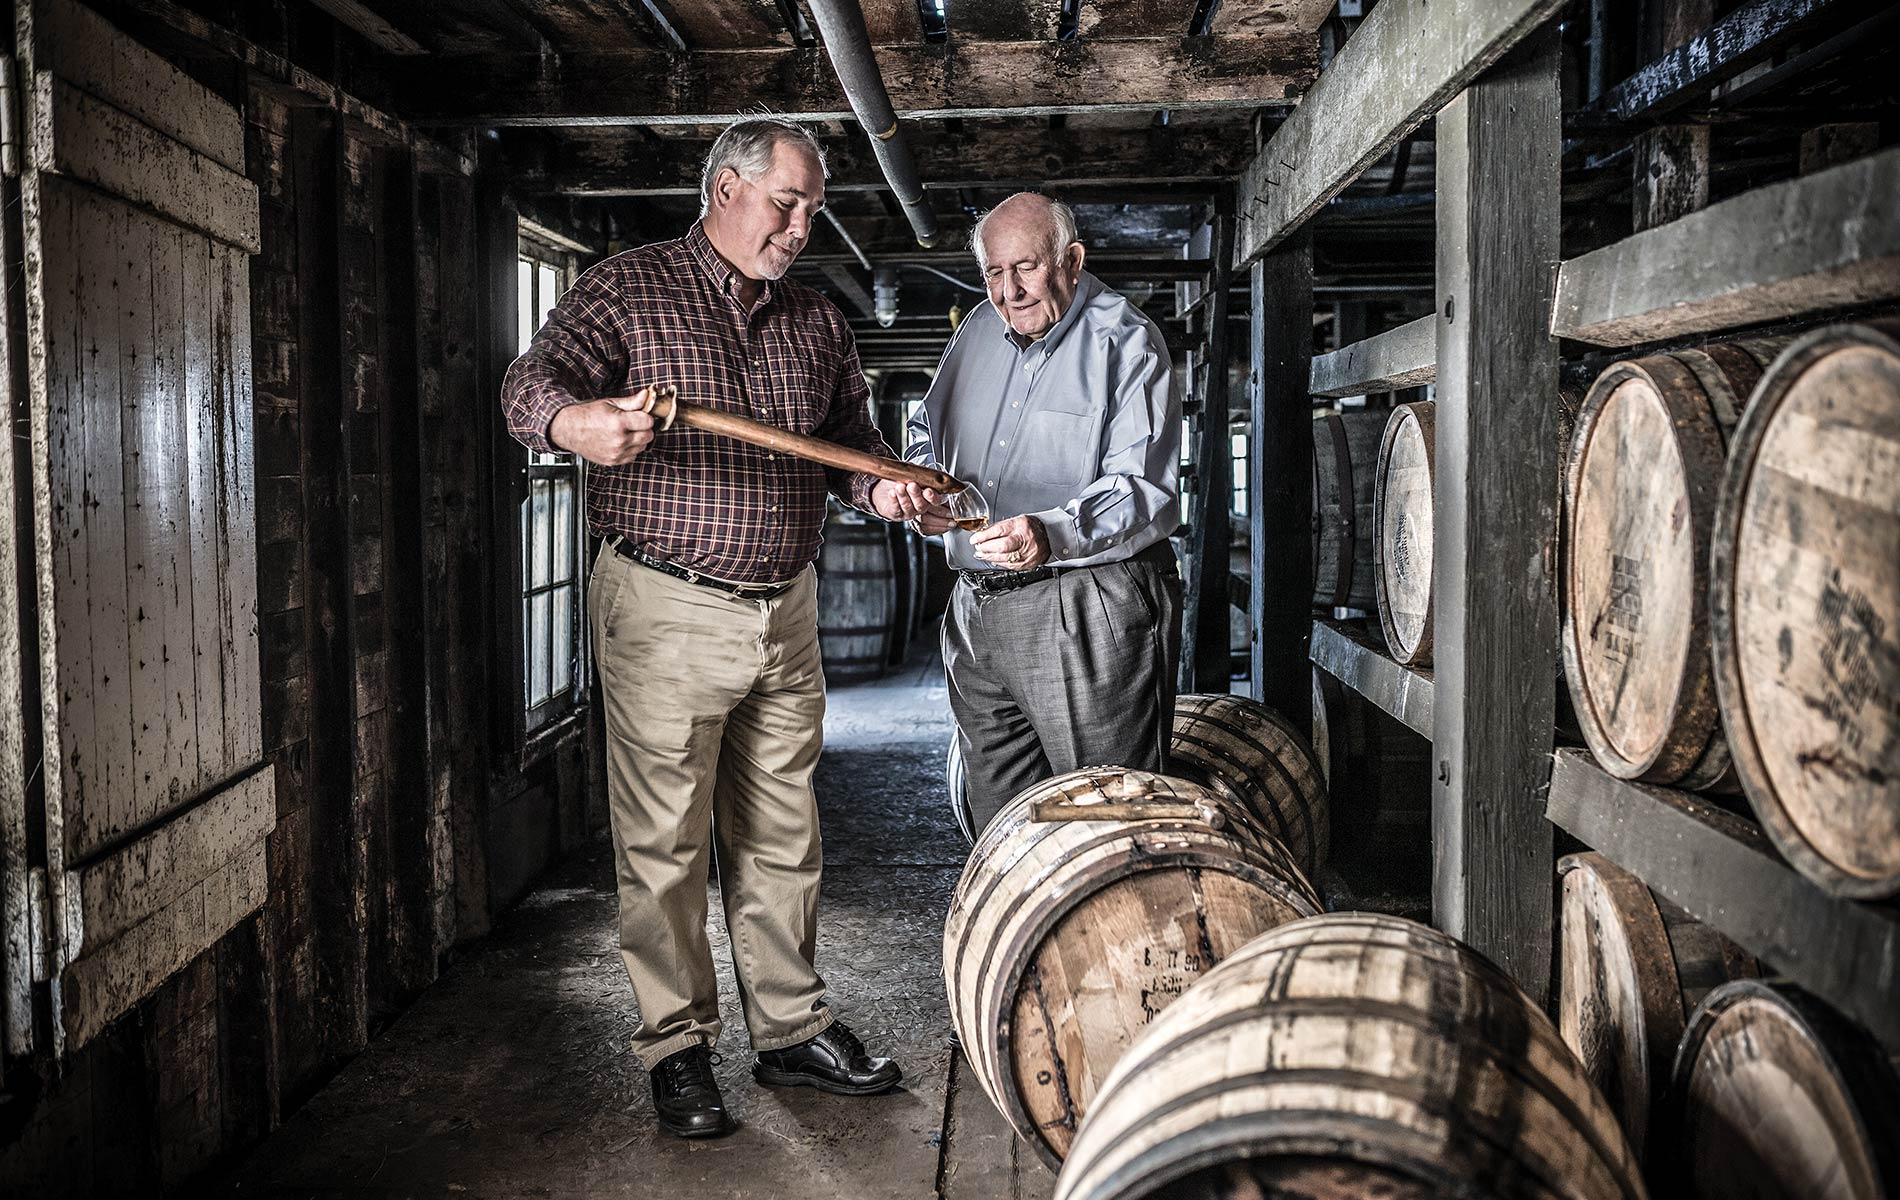 Master distiller at Wild Turkey Jimmy Russell (right) and his son, Eddie pulling a sample through a barrel